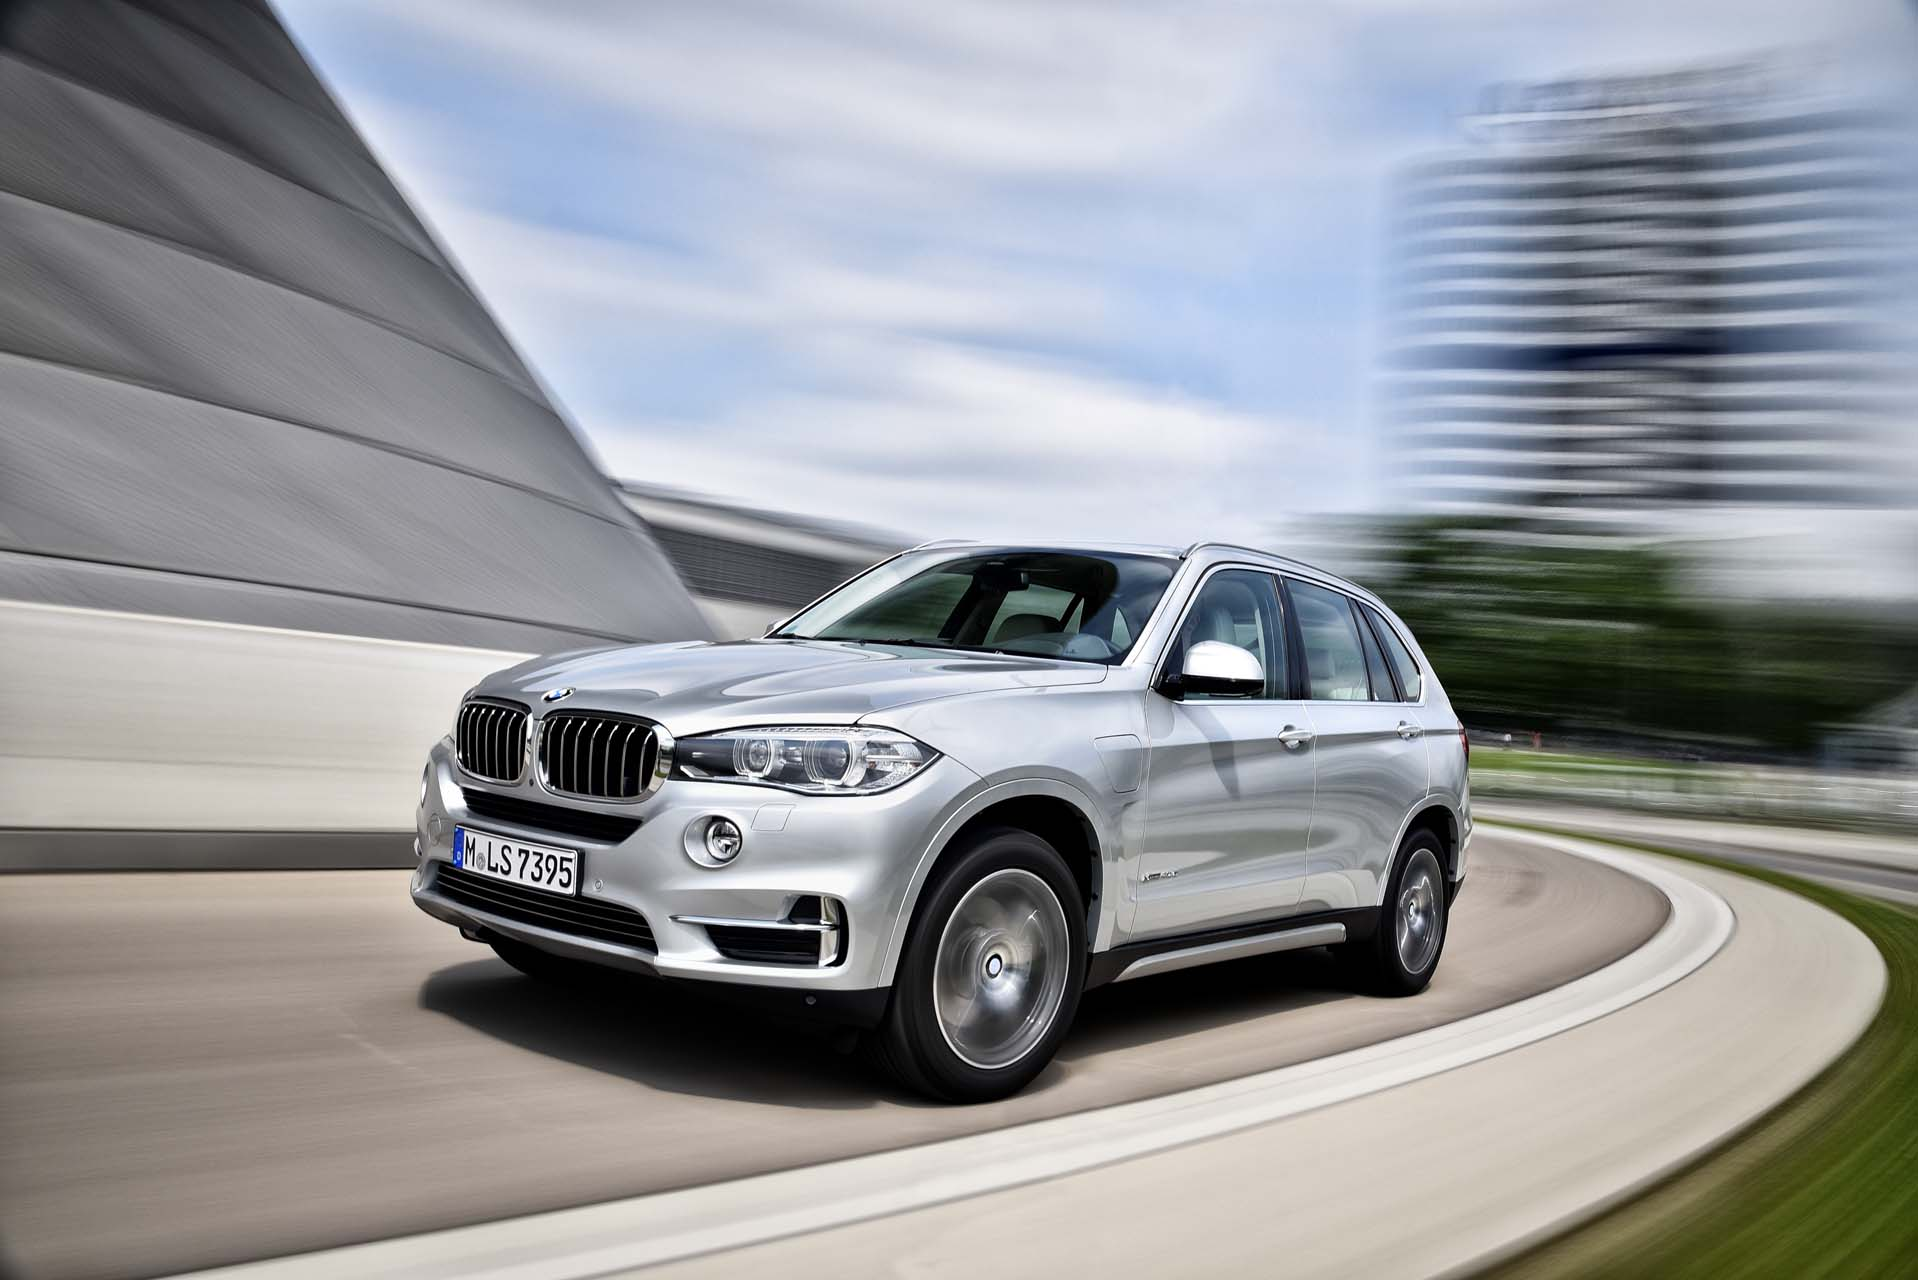 2017 Bmw X5 Quality Review The Car Connection